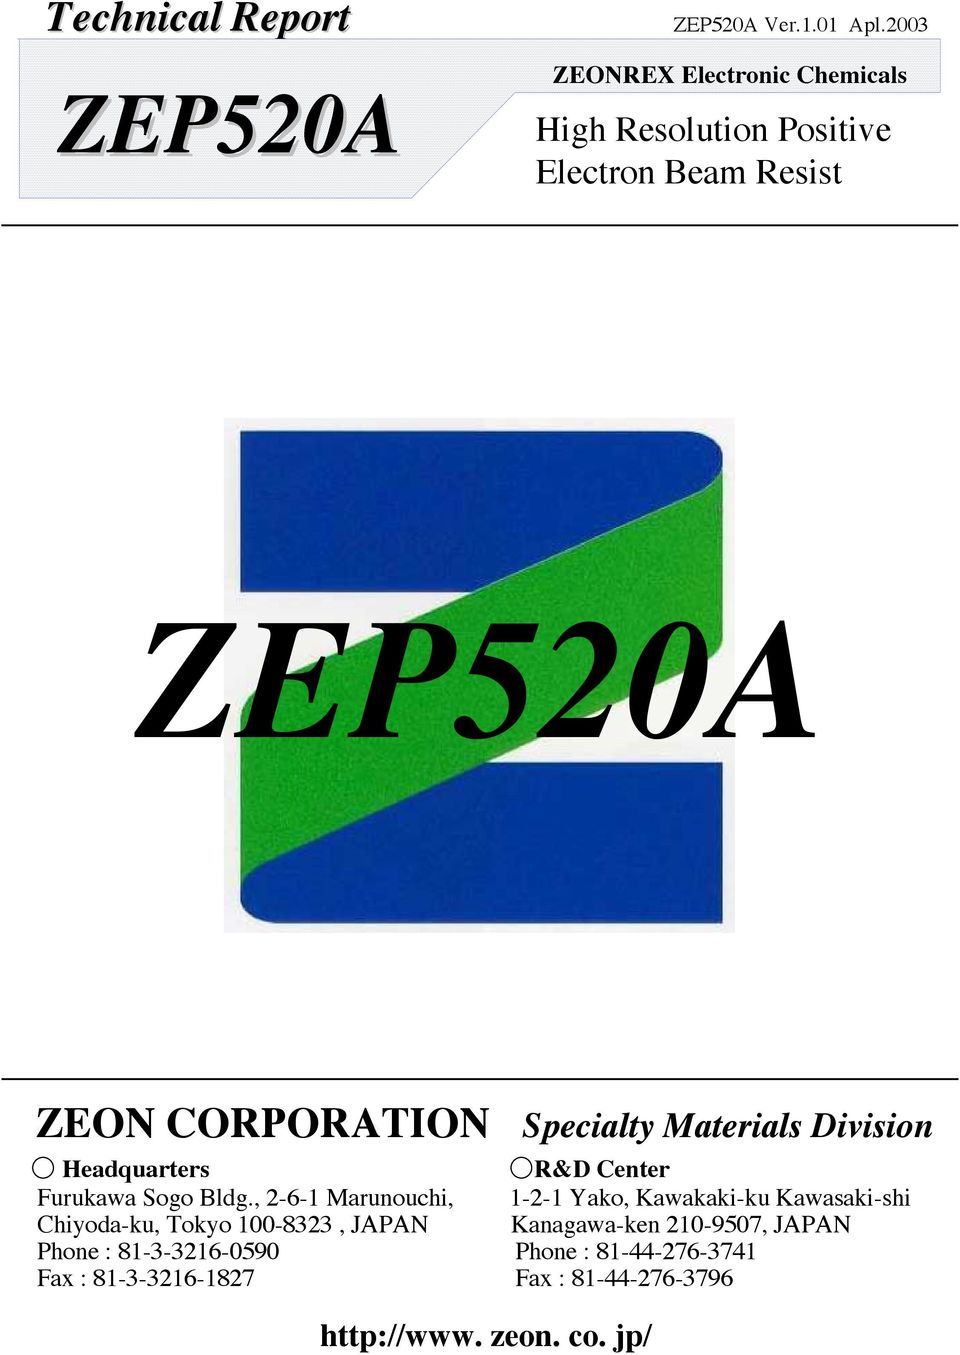 ZEP520A ZEP520A  Technical Report ZEON CORPORATION  High Resolution